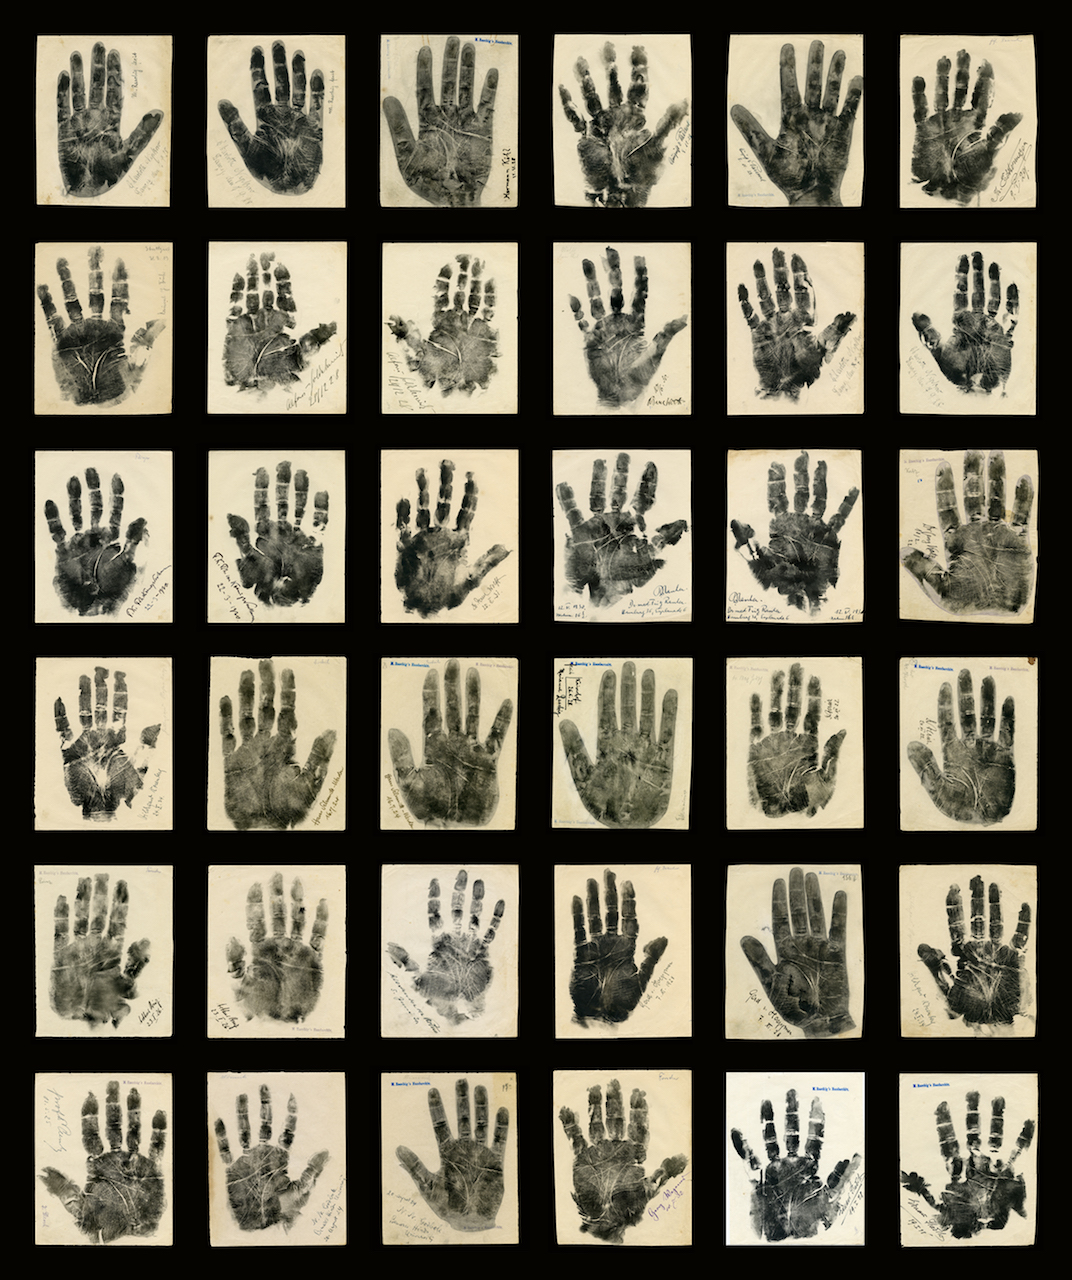 """Marianne Raschig, """"Collection of Original Vintage Palm Prints"""" (Berlin, 1925-35), ink and graphite on paper (courtesy Ricco/Maresca Gallery)"""